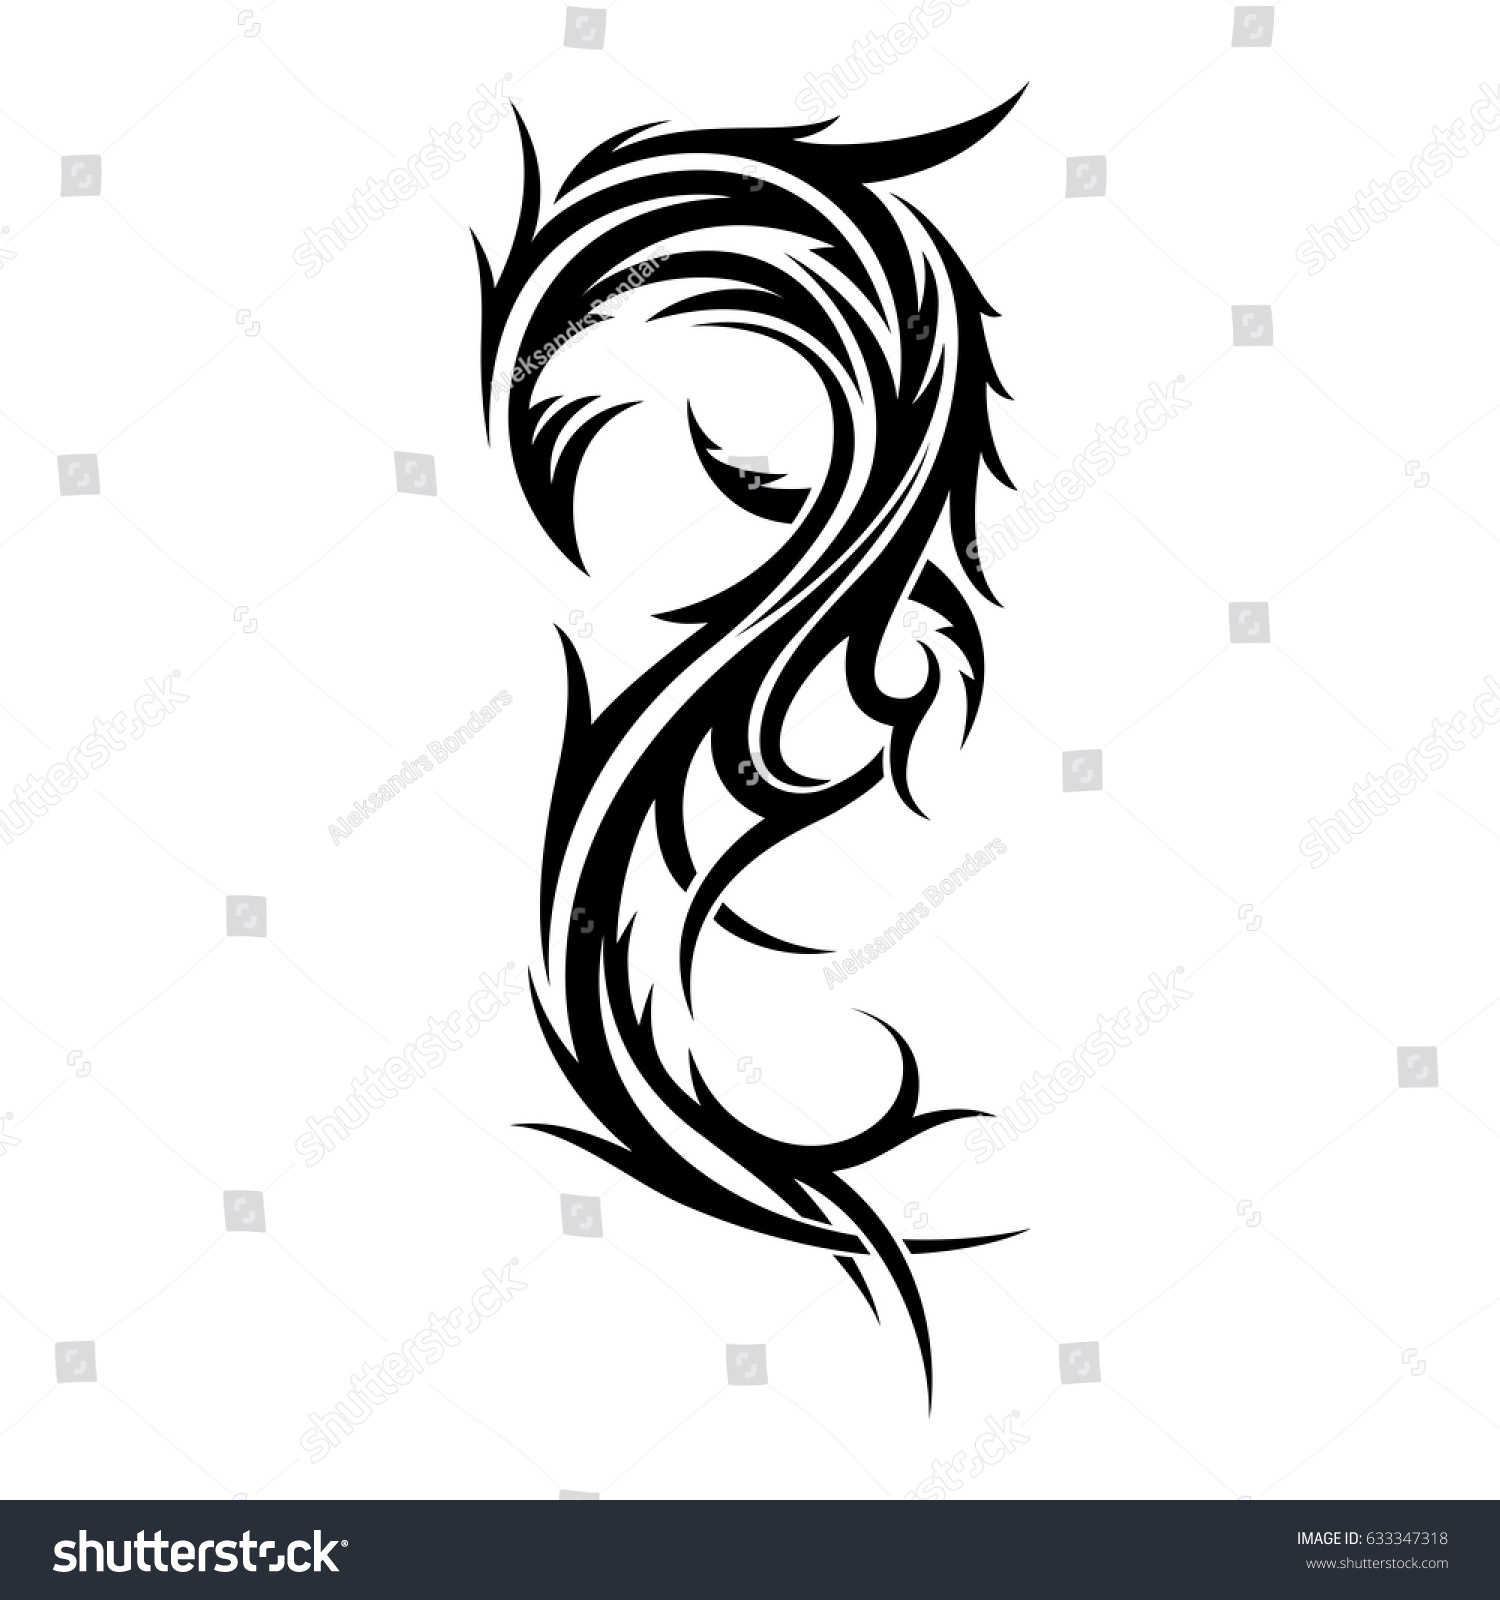 Abstract Tribal Tattoo Design Template Isolated Stock Vector